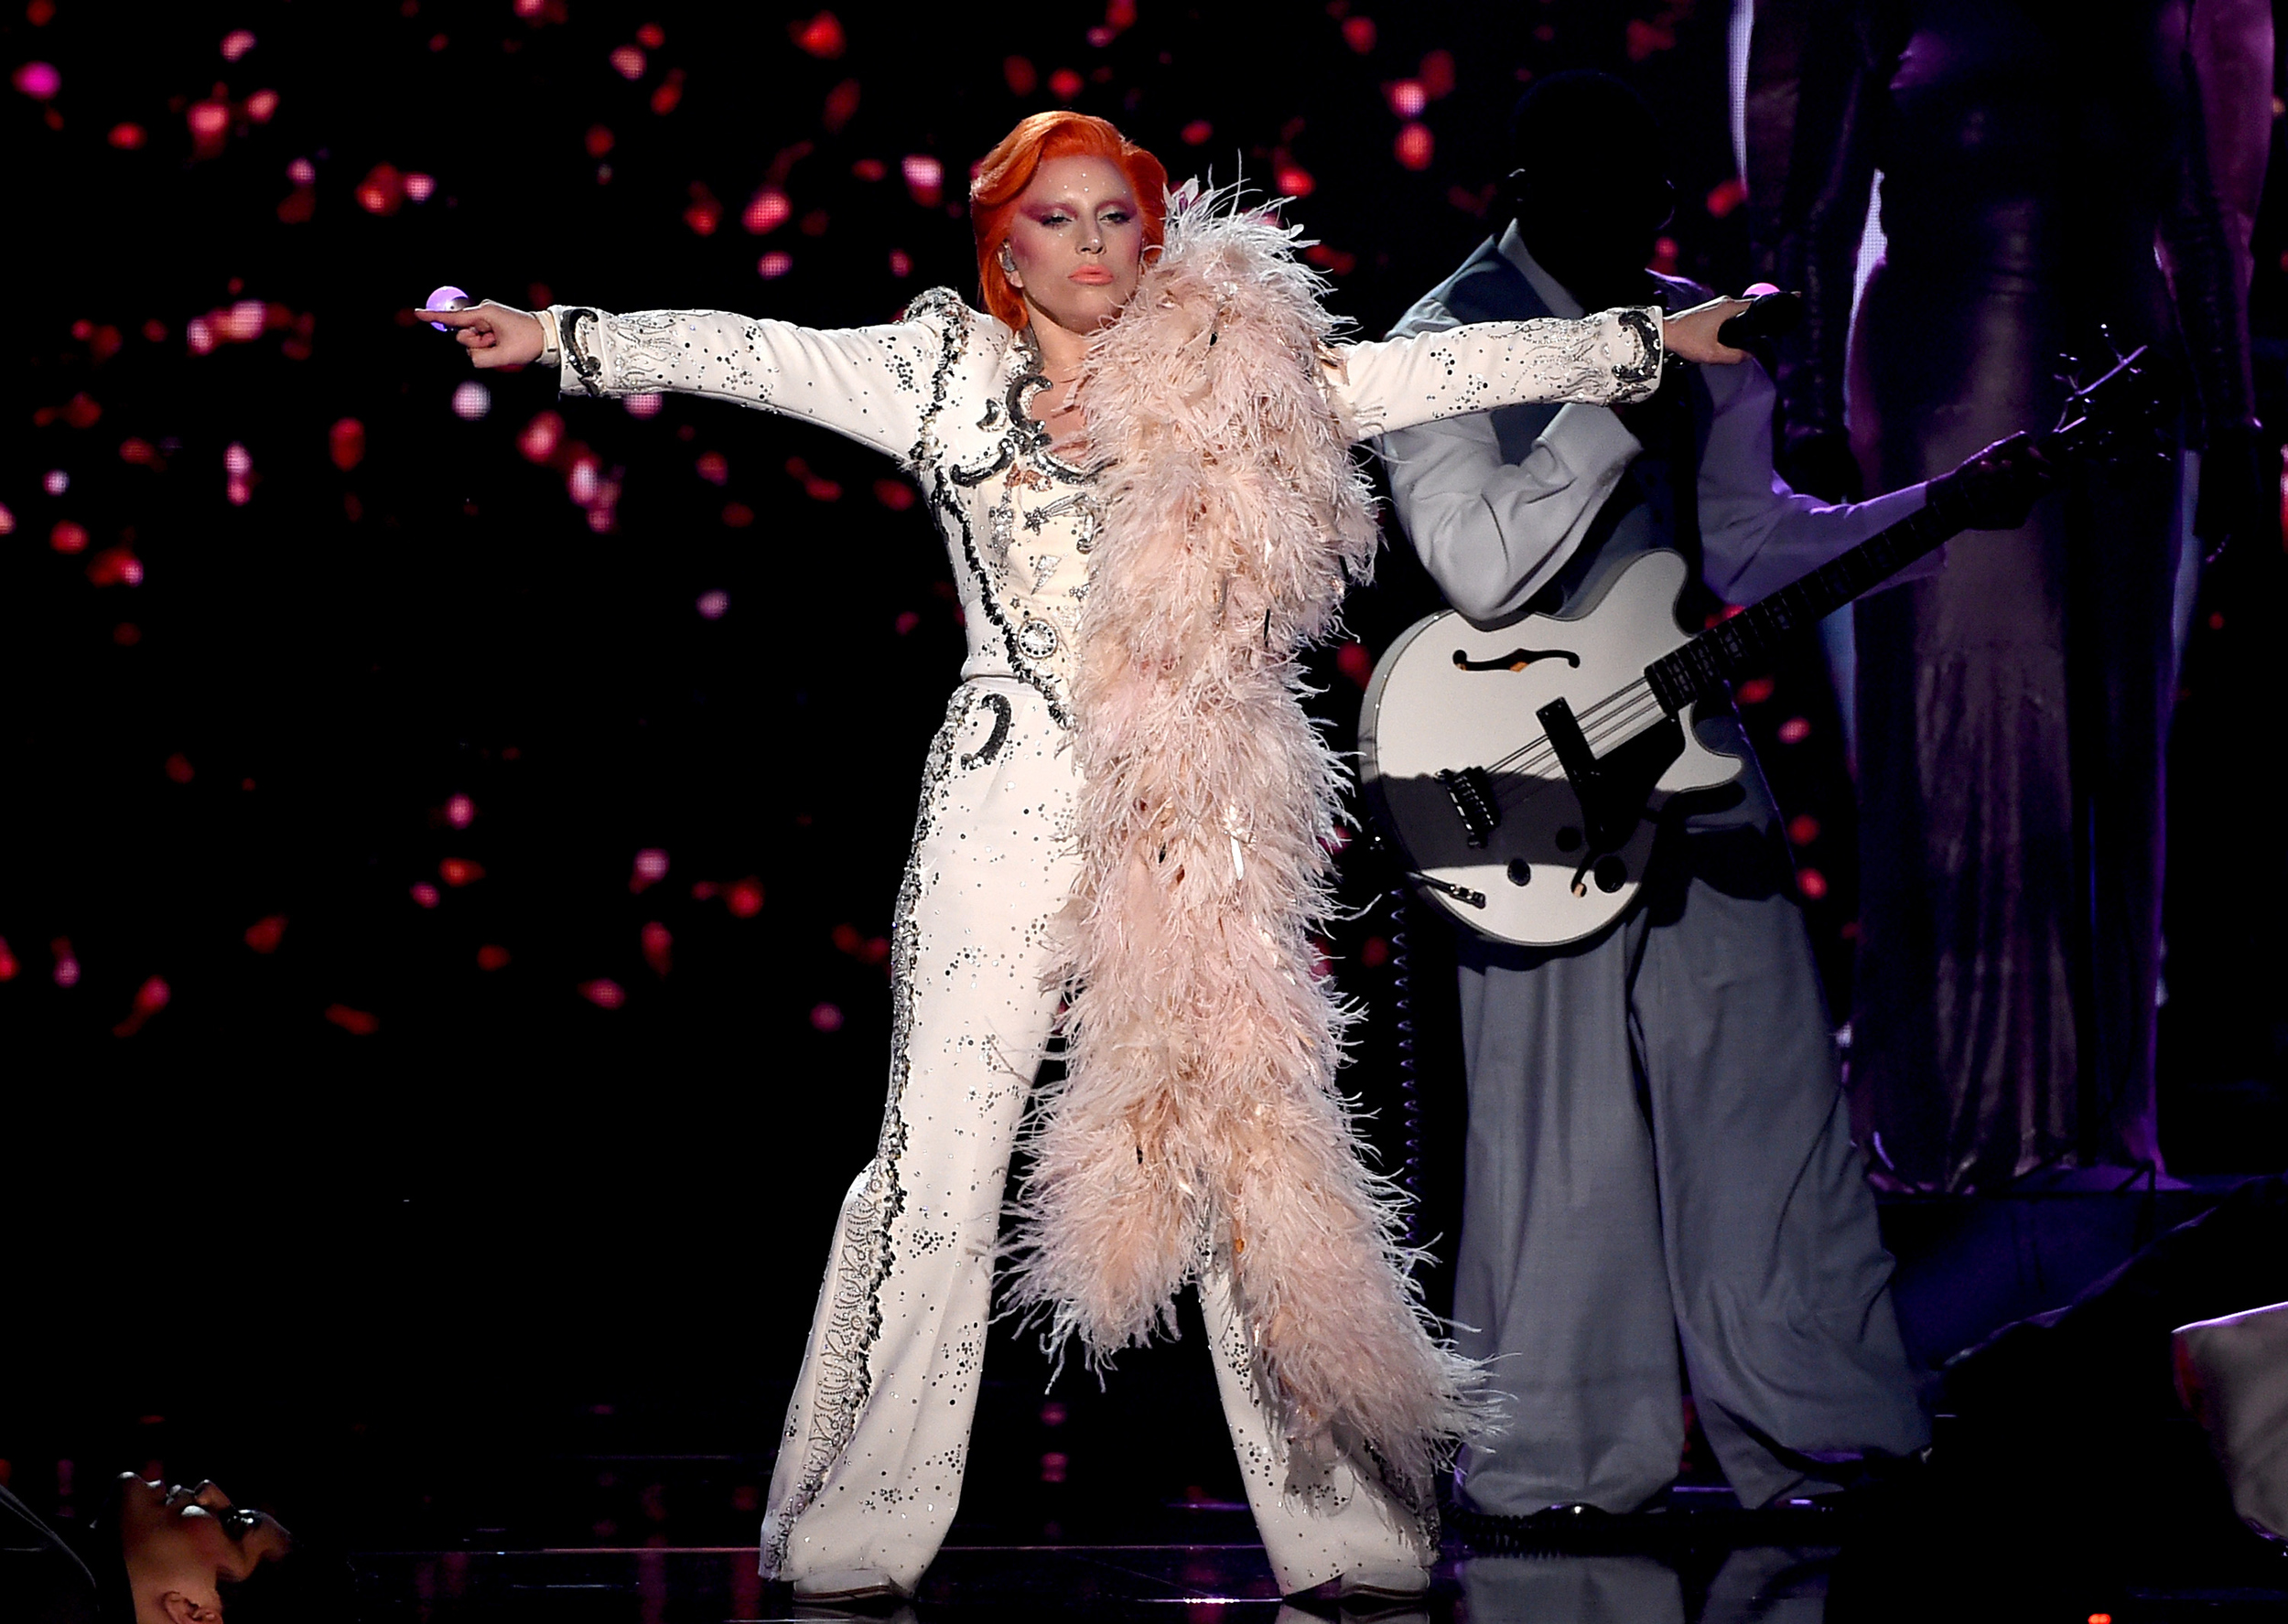 da35badd3 Lady Gaga commands stage with David Bowie tribute at Grammy Awards ...